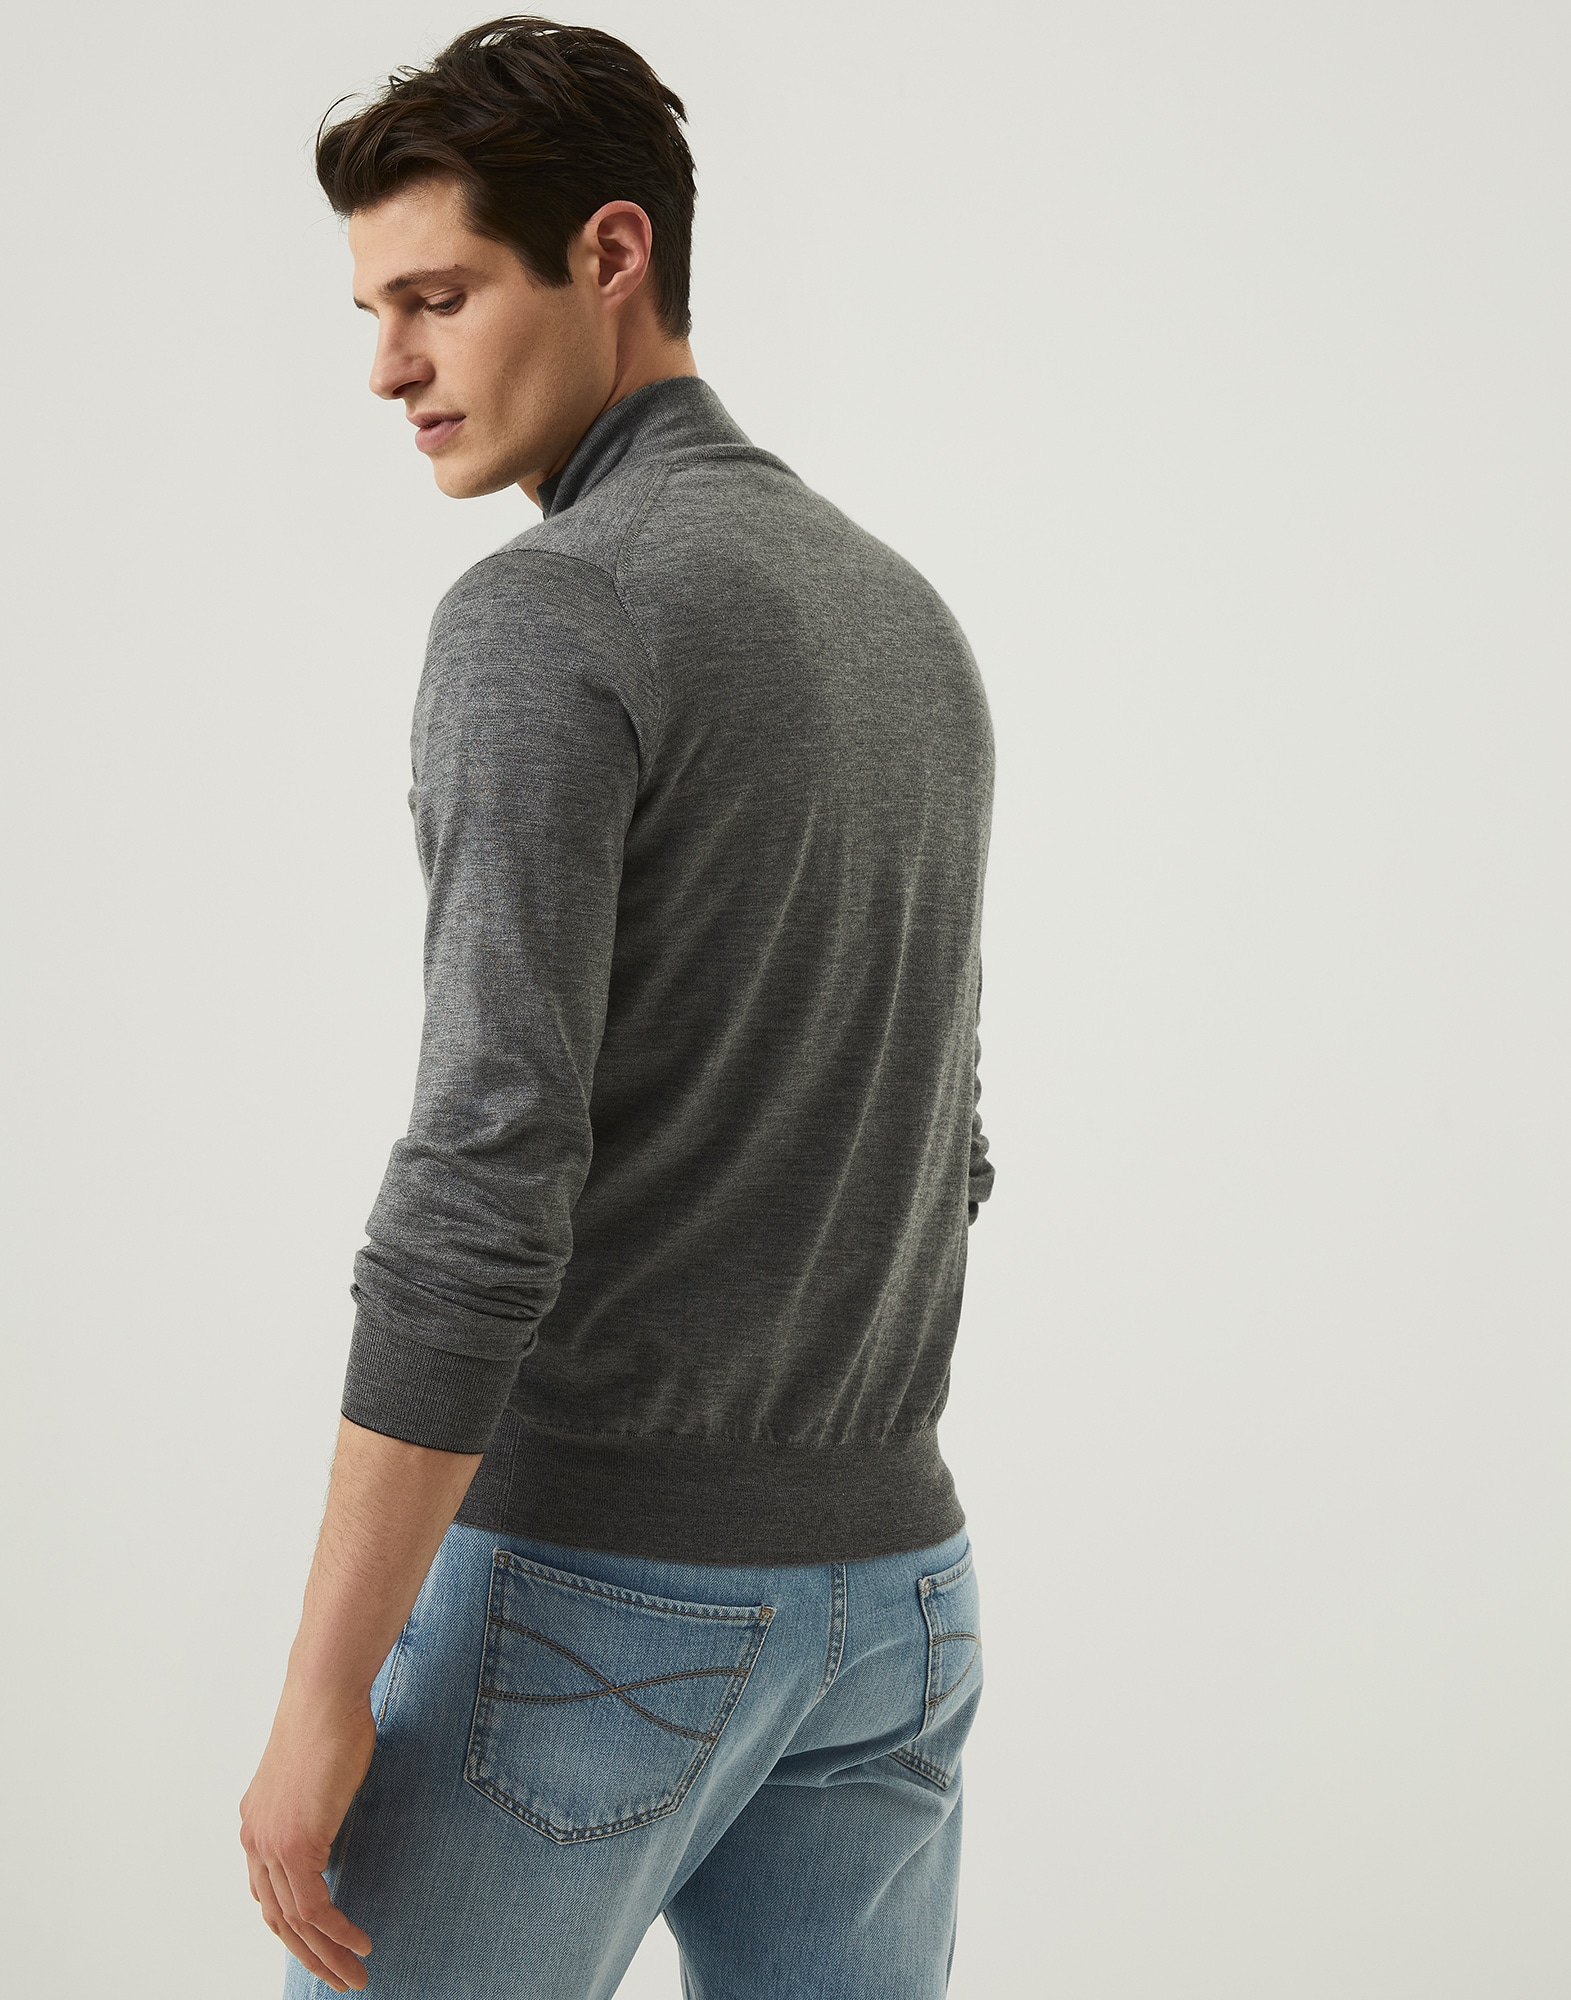 Zip-front Cardigan - Back view